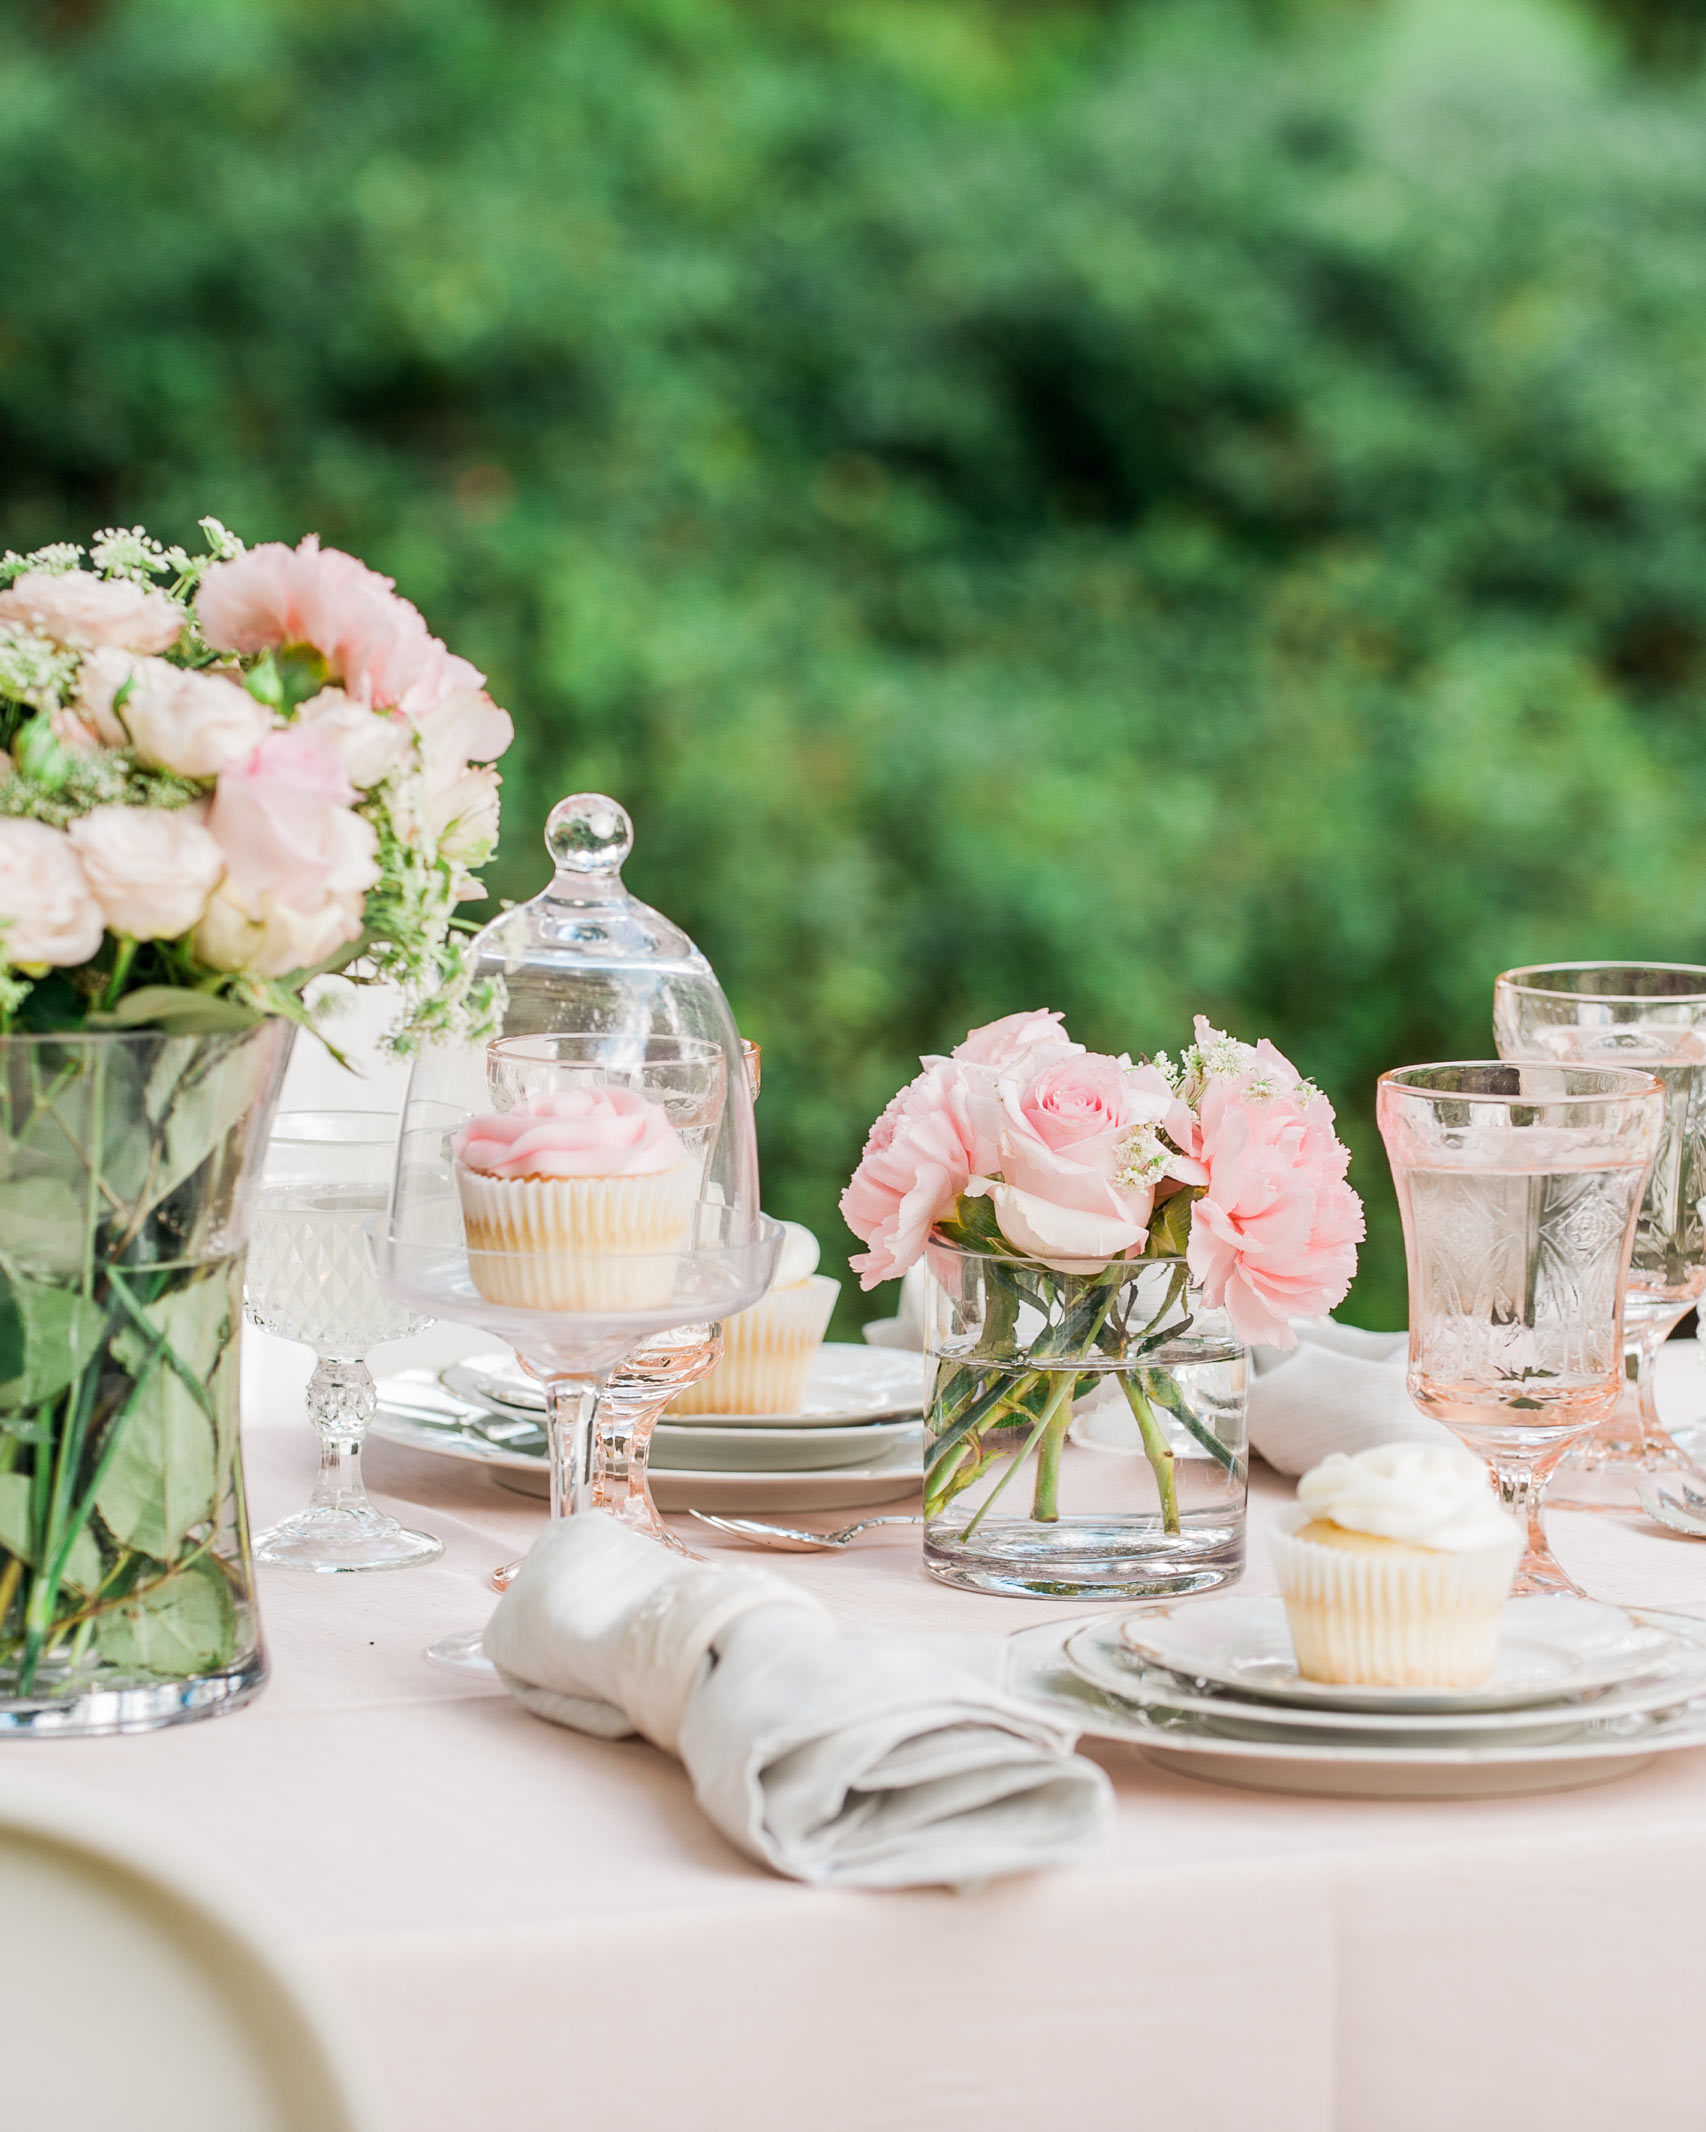 fashionable-hostess-bridal-shower-table-scape-0416.jpg